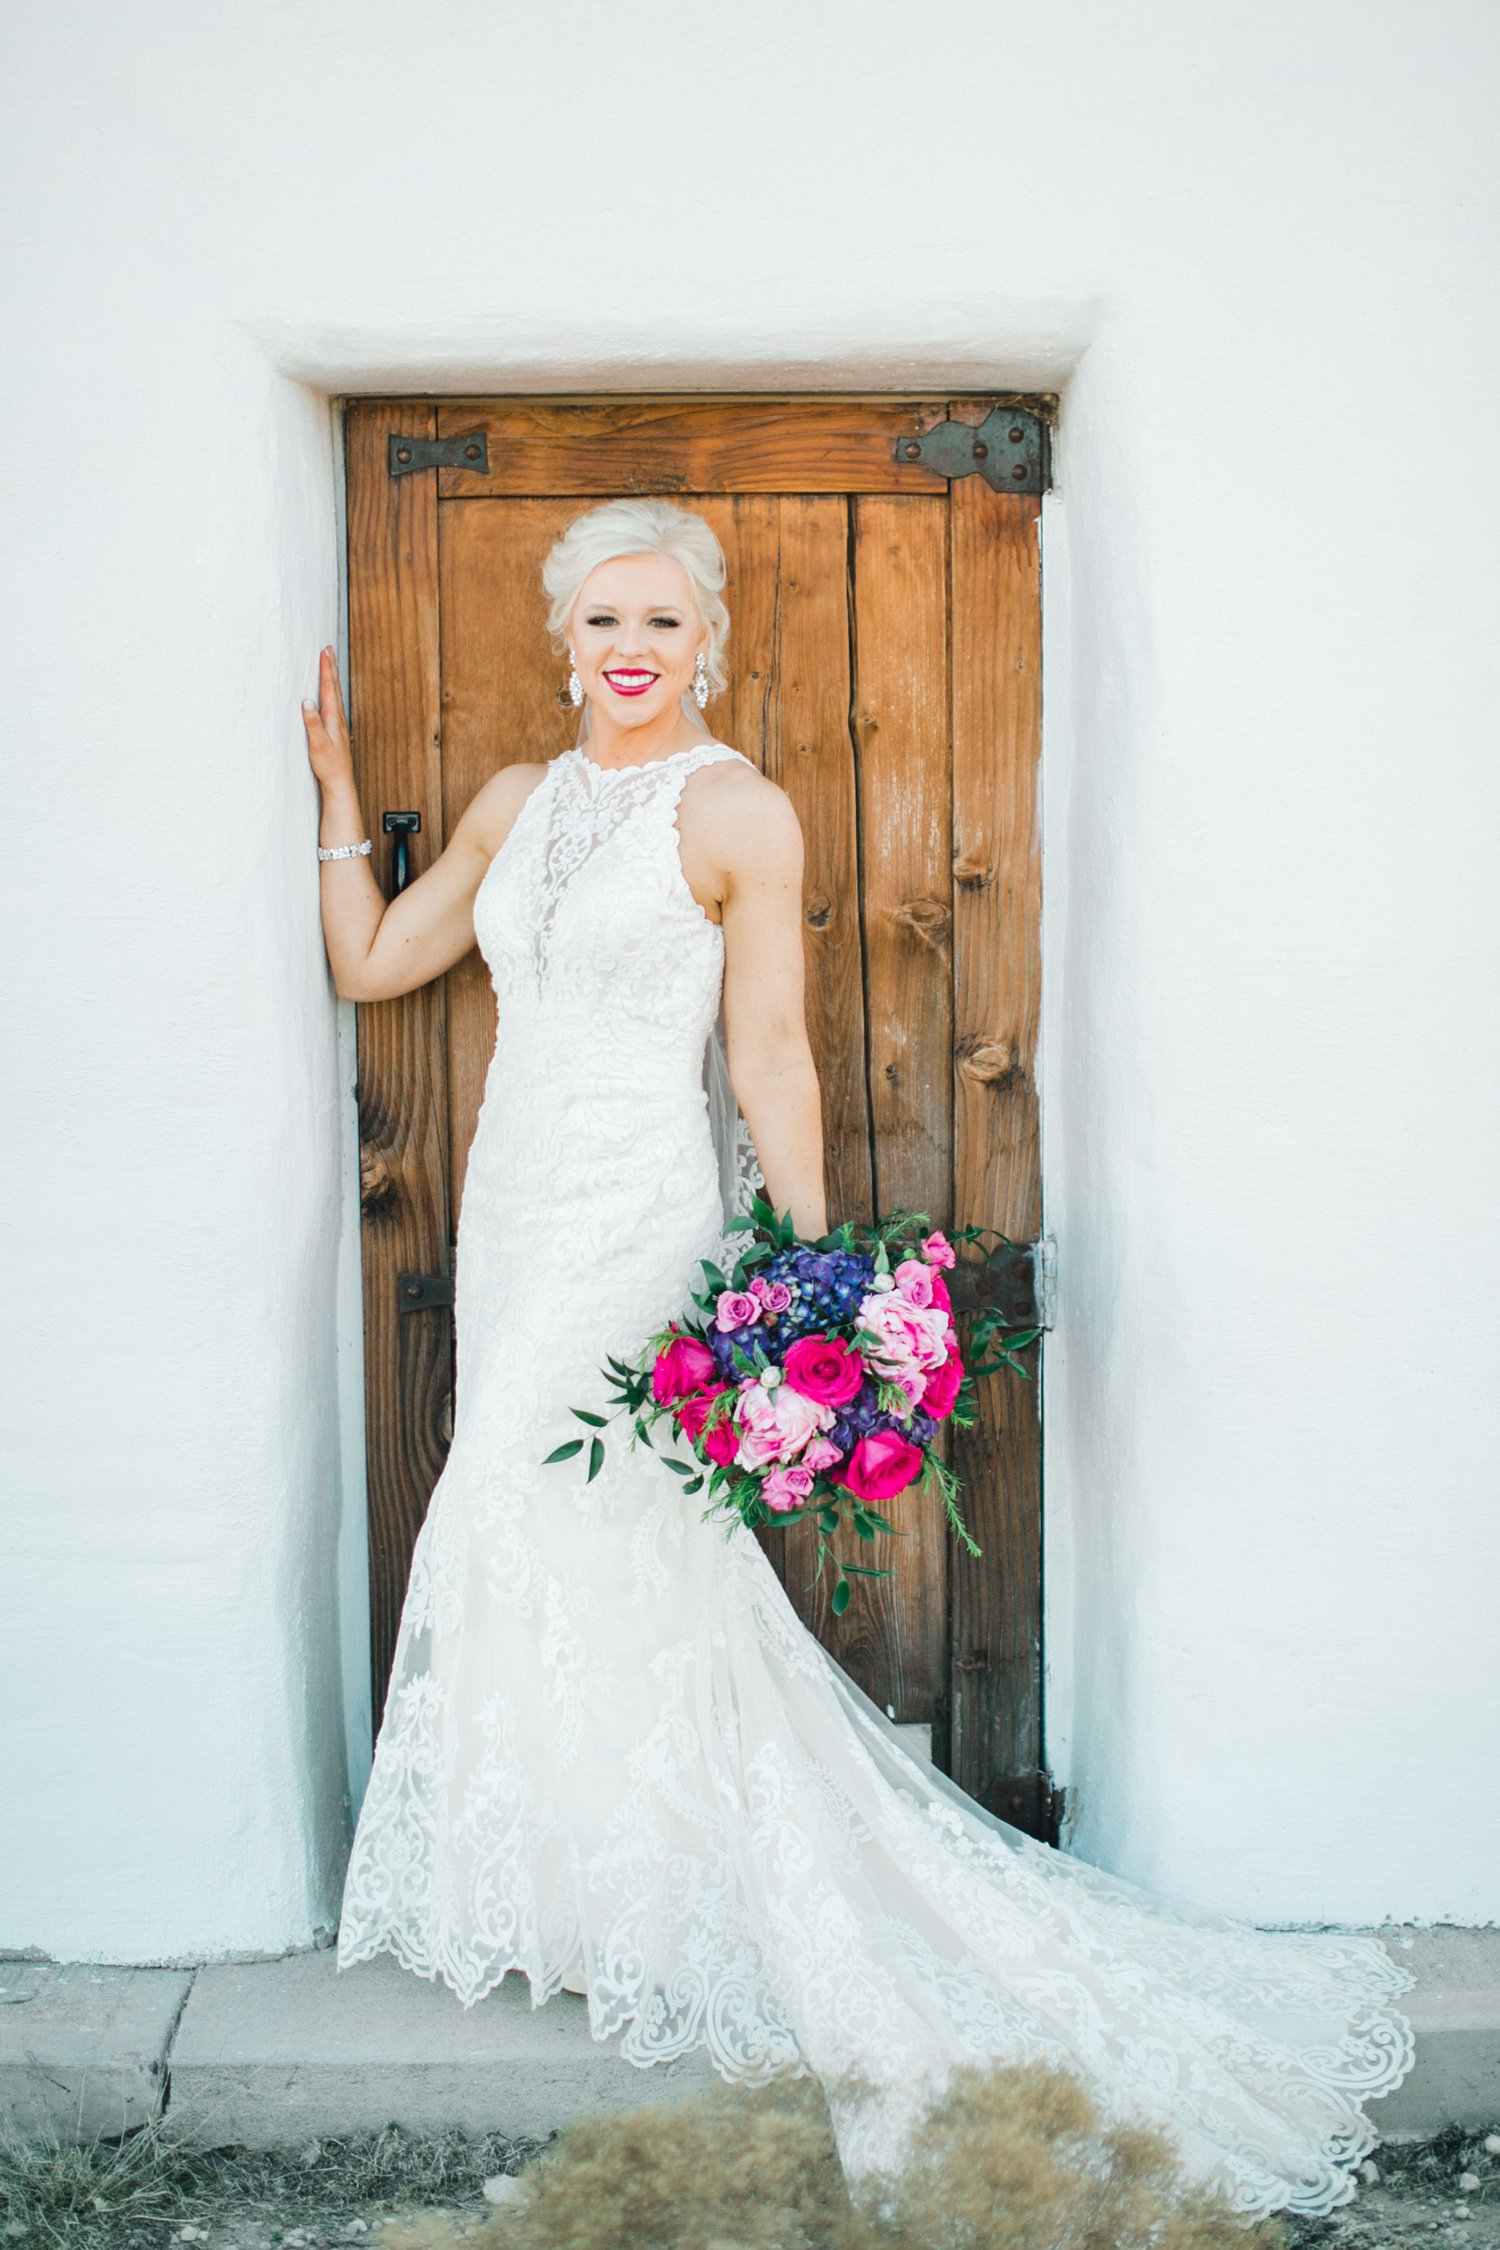 Jenna-evans-bridals-balmorhea-texas-fort-davis-wedding-photographer-lubbock-photographer__0044.jpg